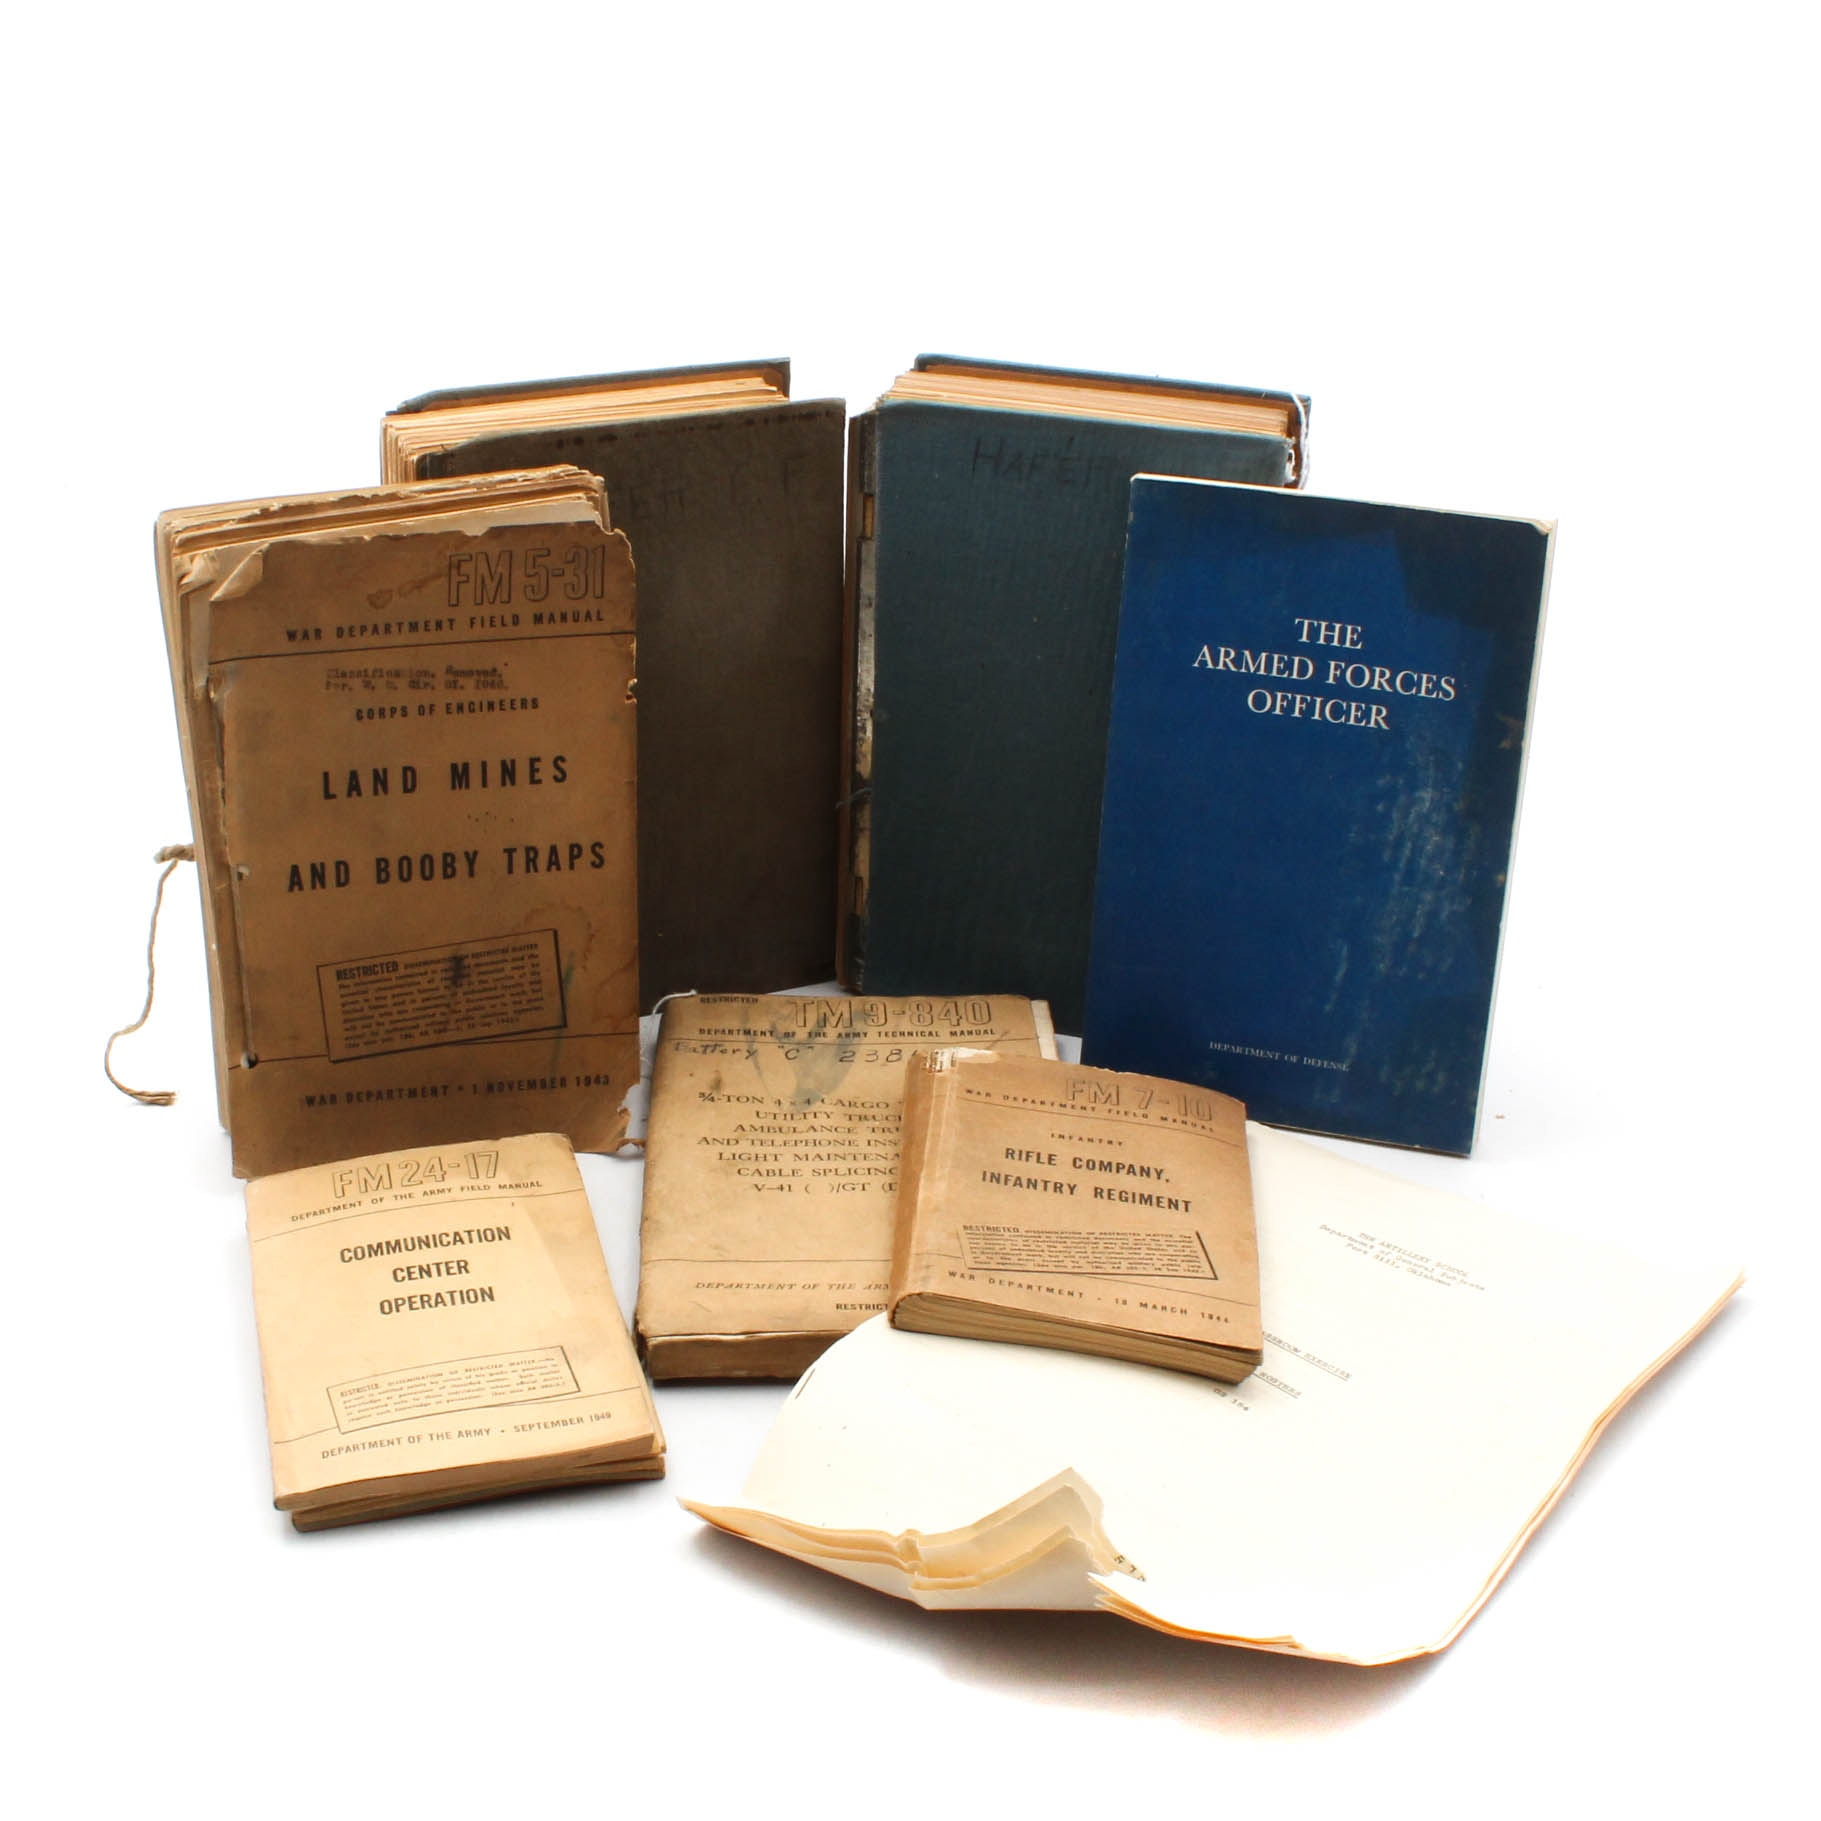 Vintage Military Books Featuring Manuals from the War Department